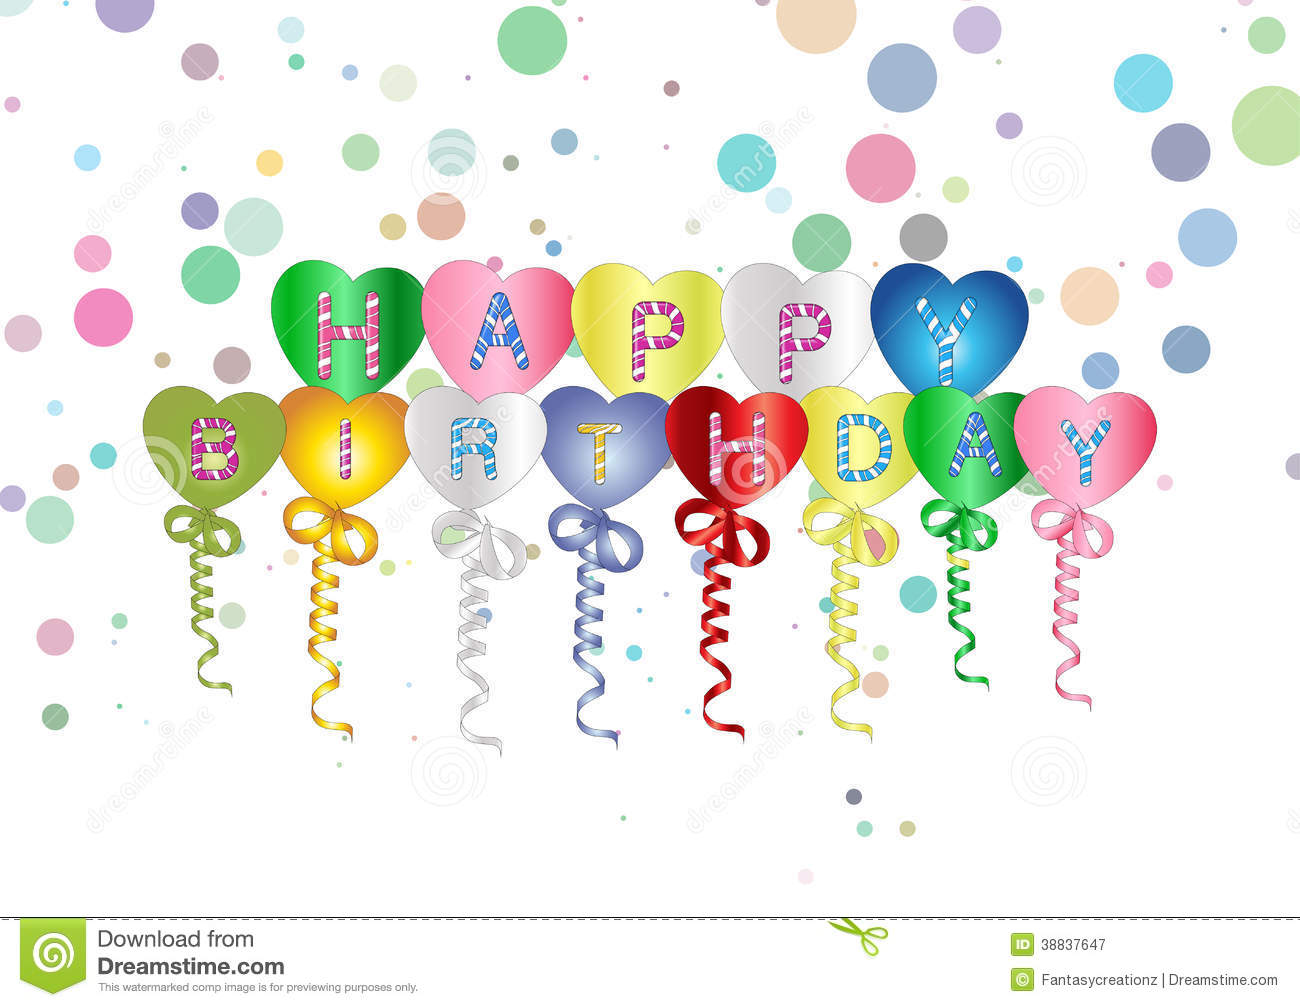 balloons streamers birthday party celebration stock illustrations